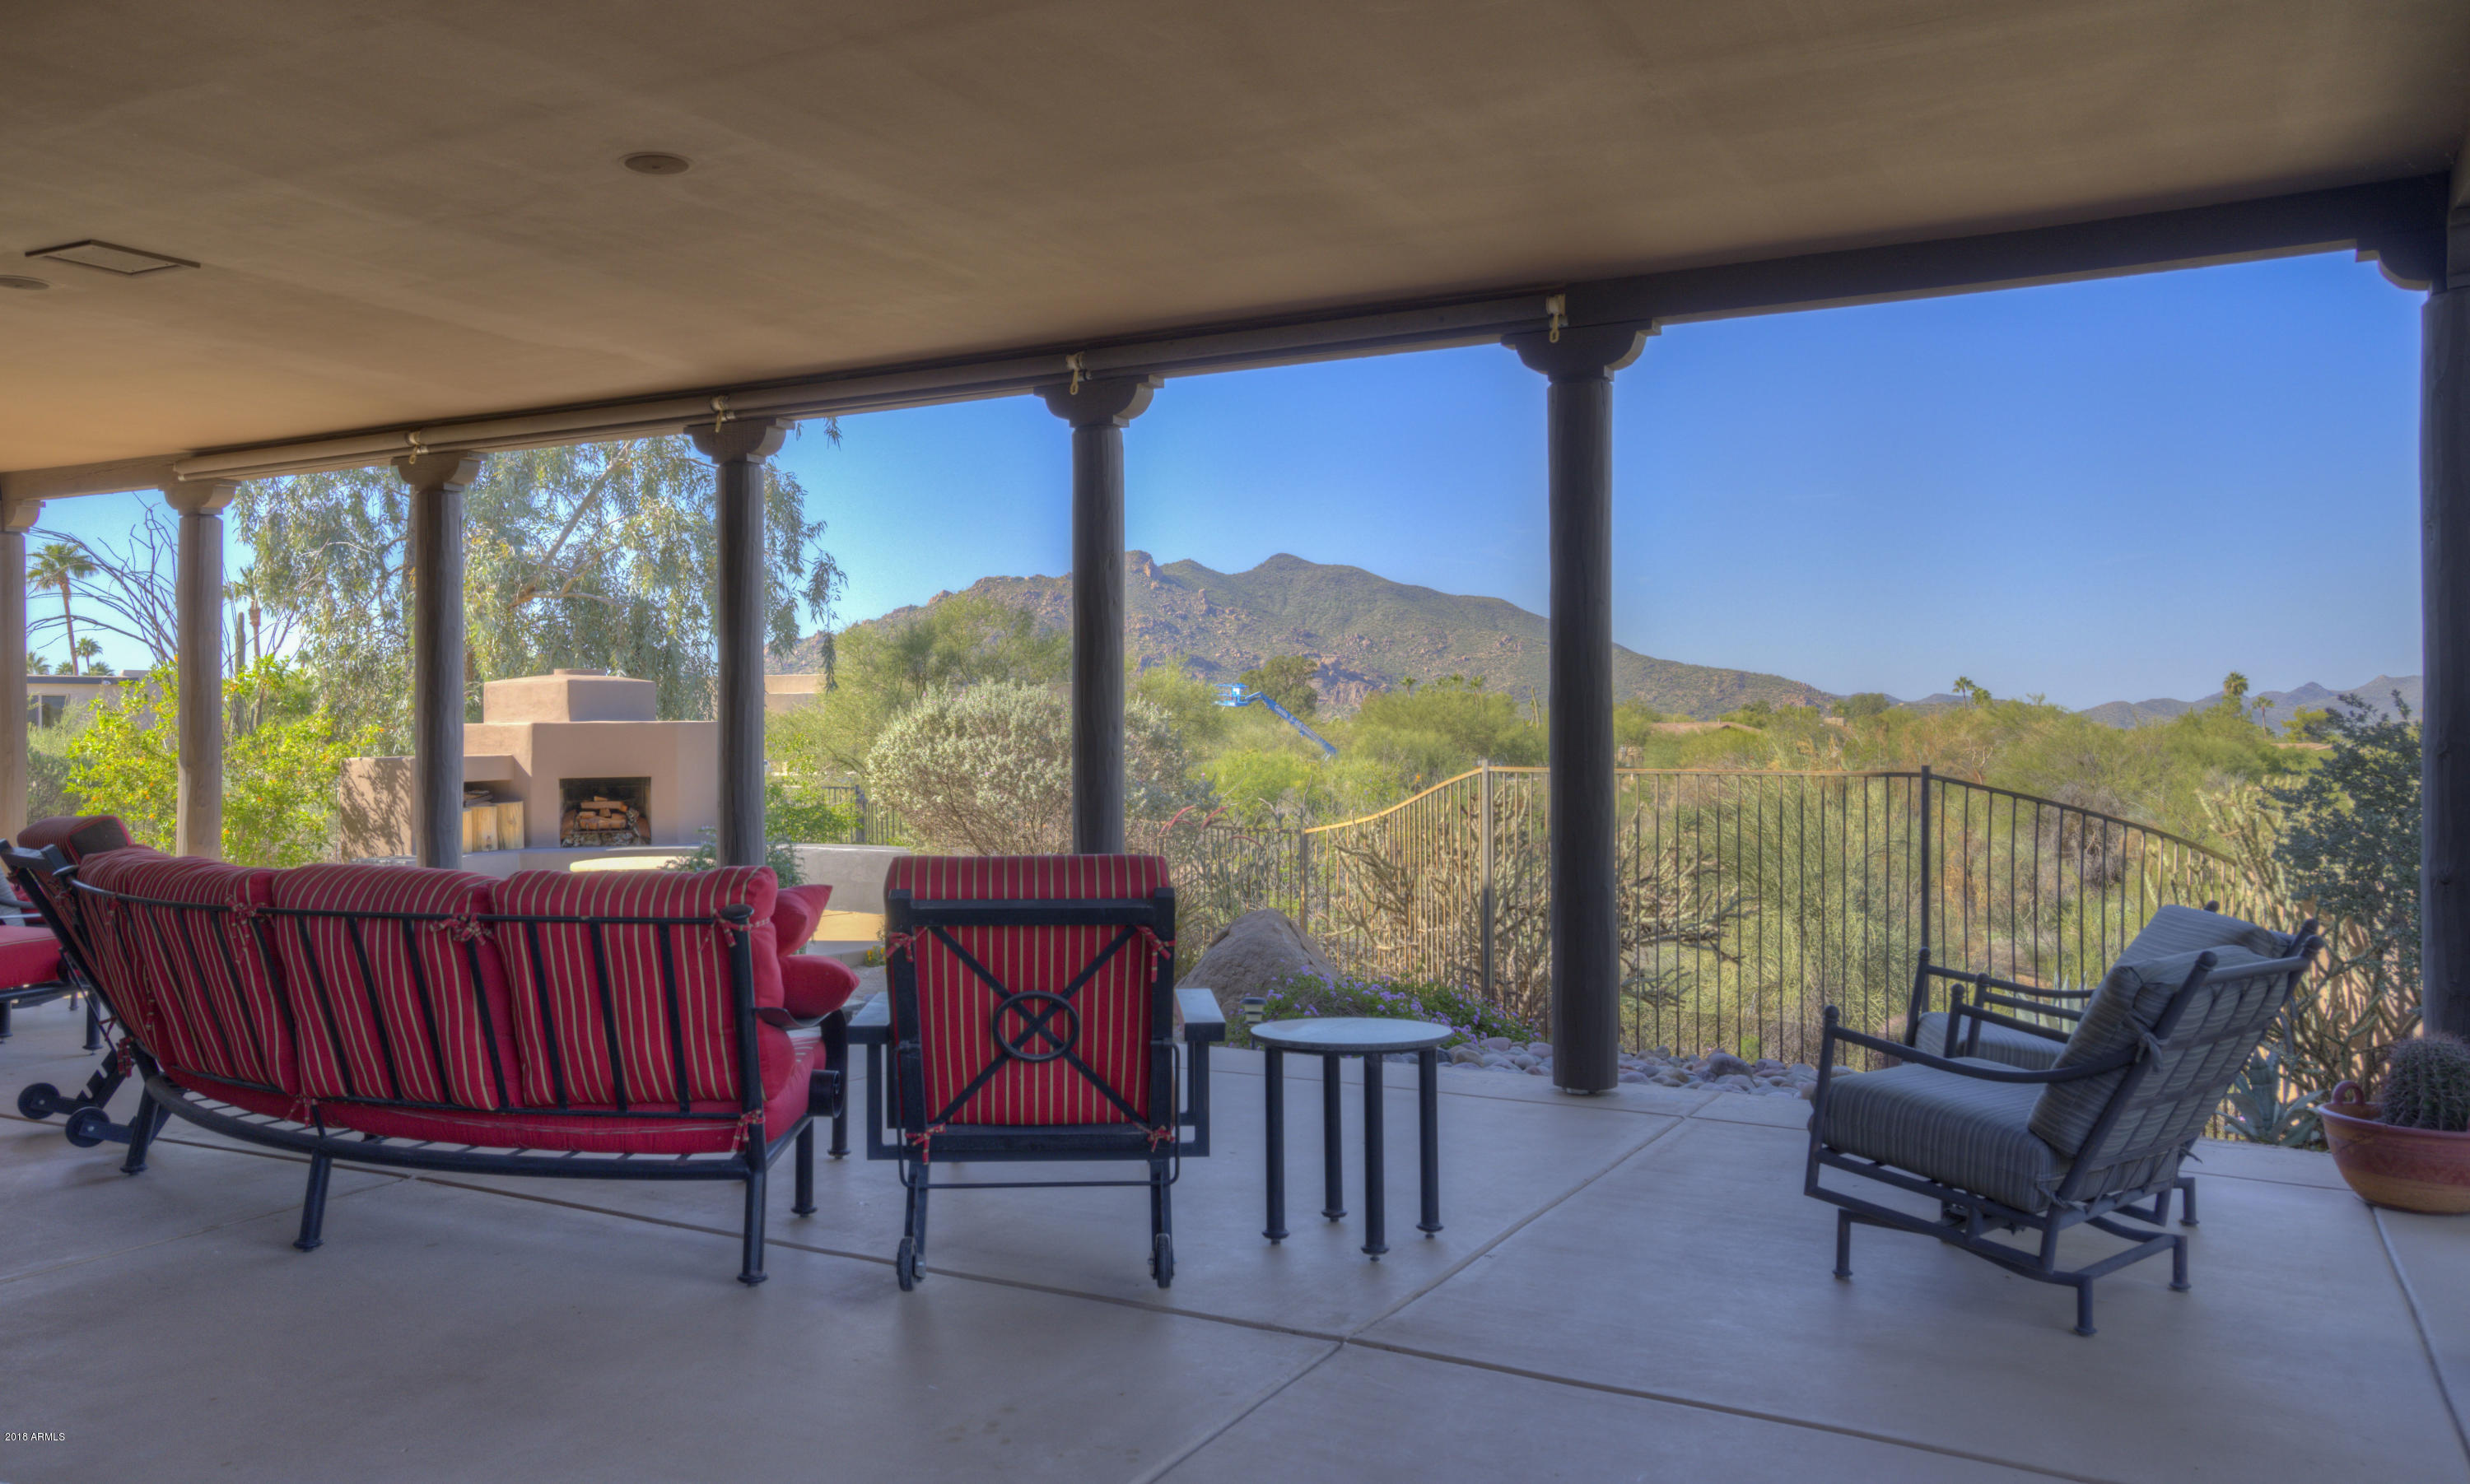 8017 E Carefree Drive, Carefree, AZ 85377, 3 Bedrooms Bedrooms, ,Residential Lease,For Rent,8017 E Carefree Drive,5846167